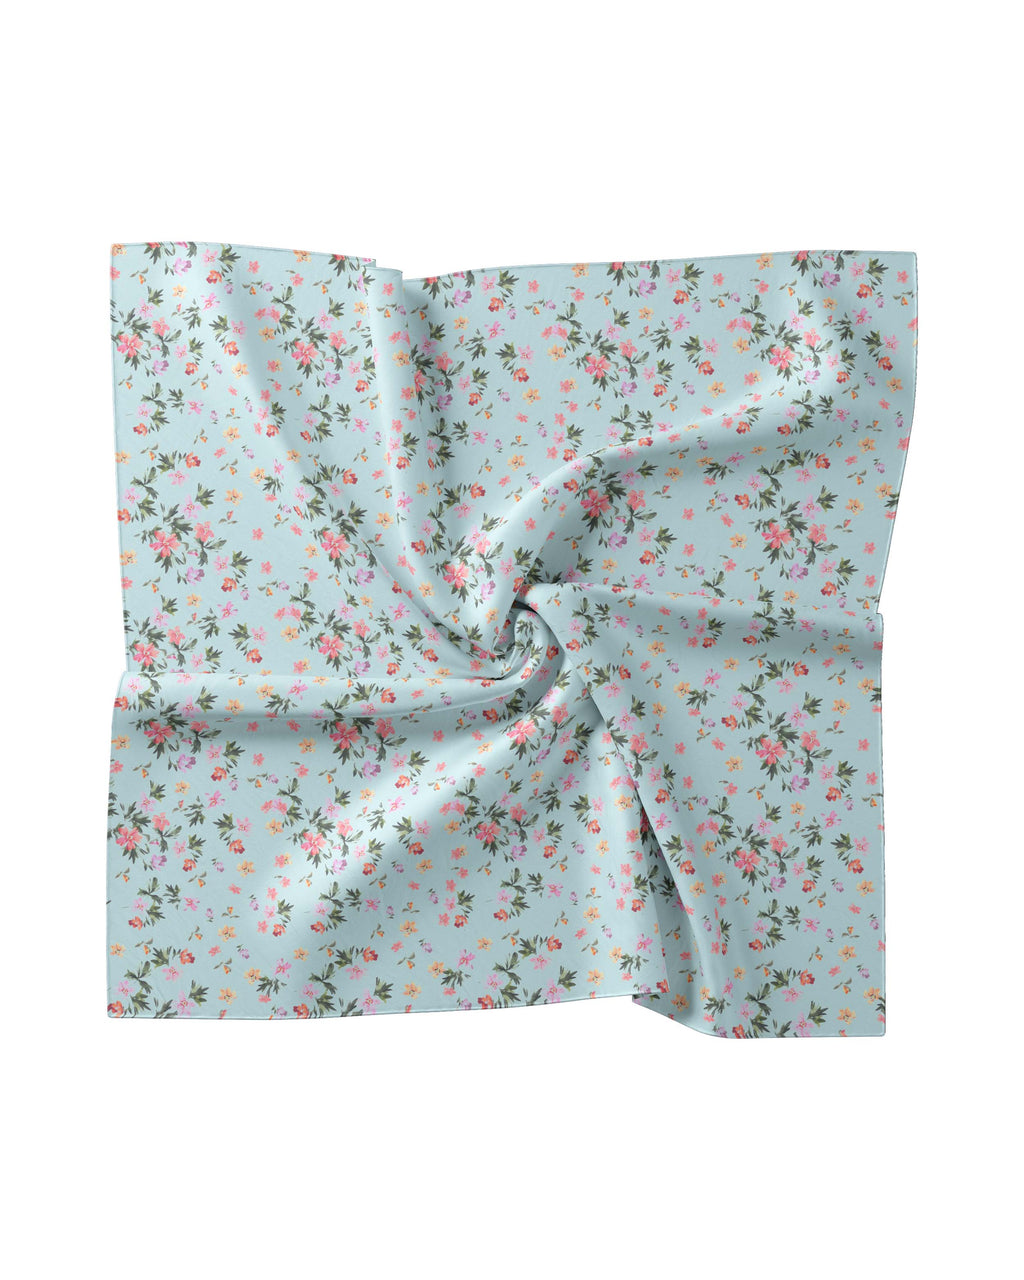 AC10004 - AQUA FLORAL SILK BLEND SCARF - accessories - scarves - Made from leftover fabric from our Summer 2020 collection, these scarves are the perfect addition to your warm weather wardrobe. Choose from 7 different colorways. Style as a head scarf, tie it on your beach bag, or just throw around your neck.The possibilities are endless.